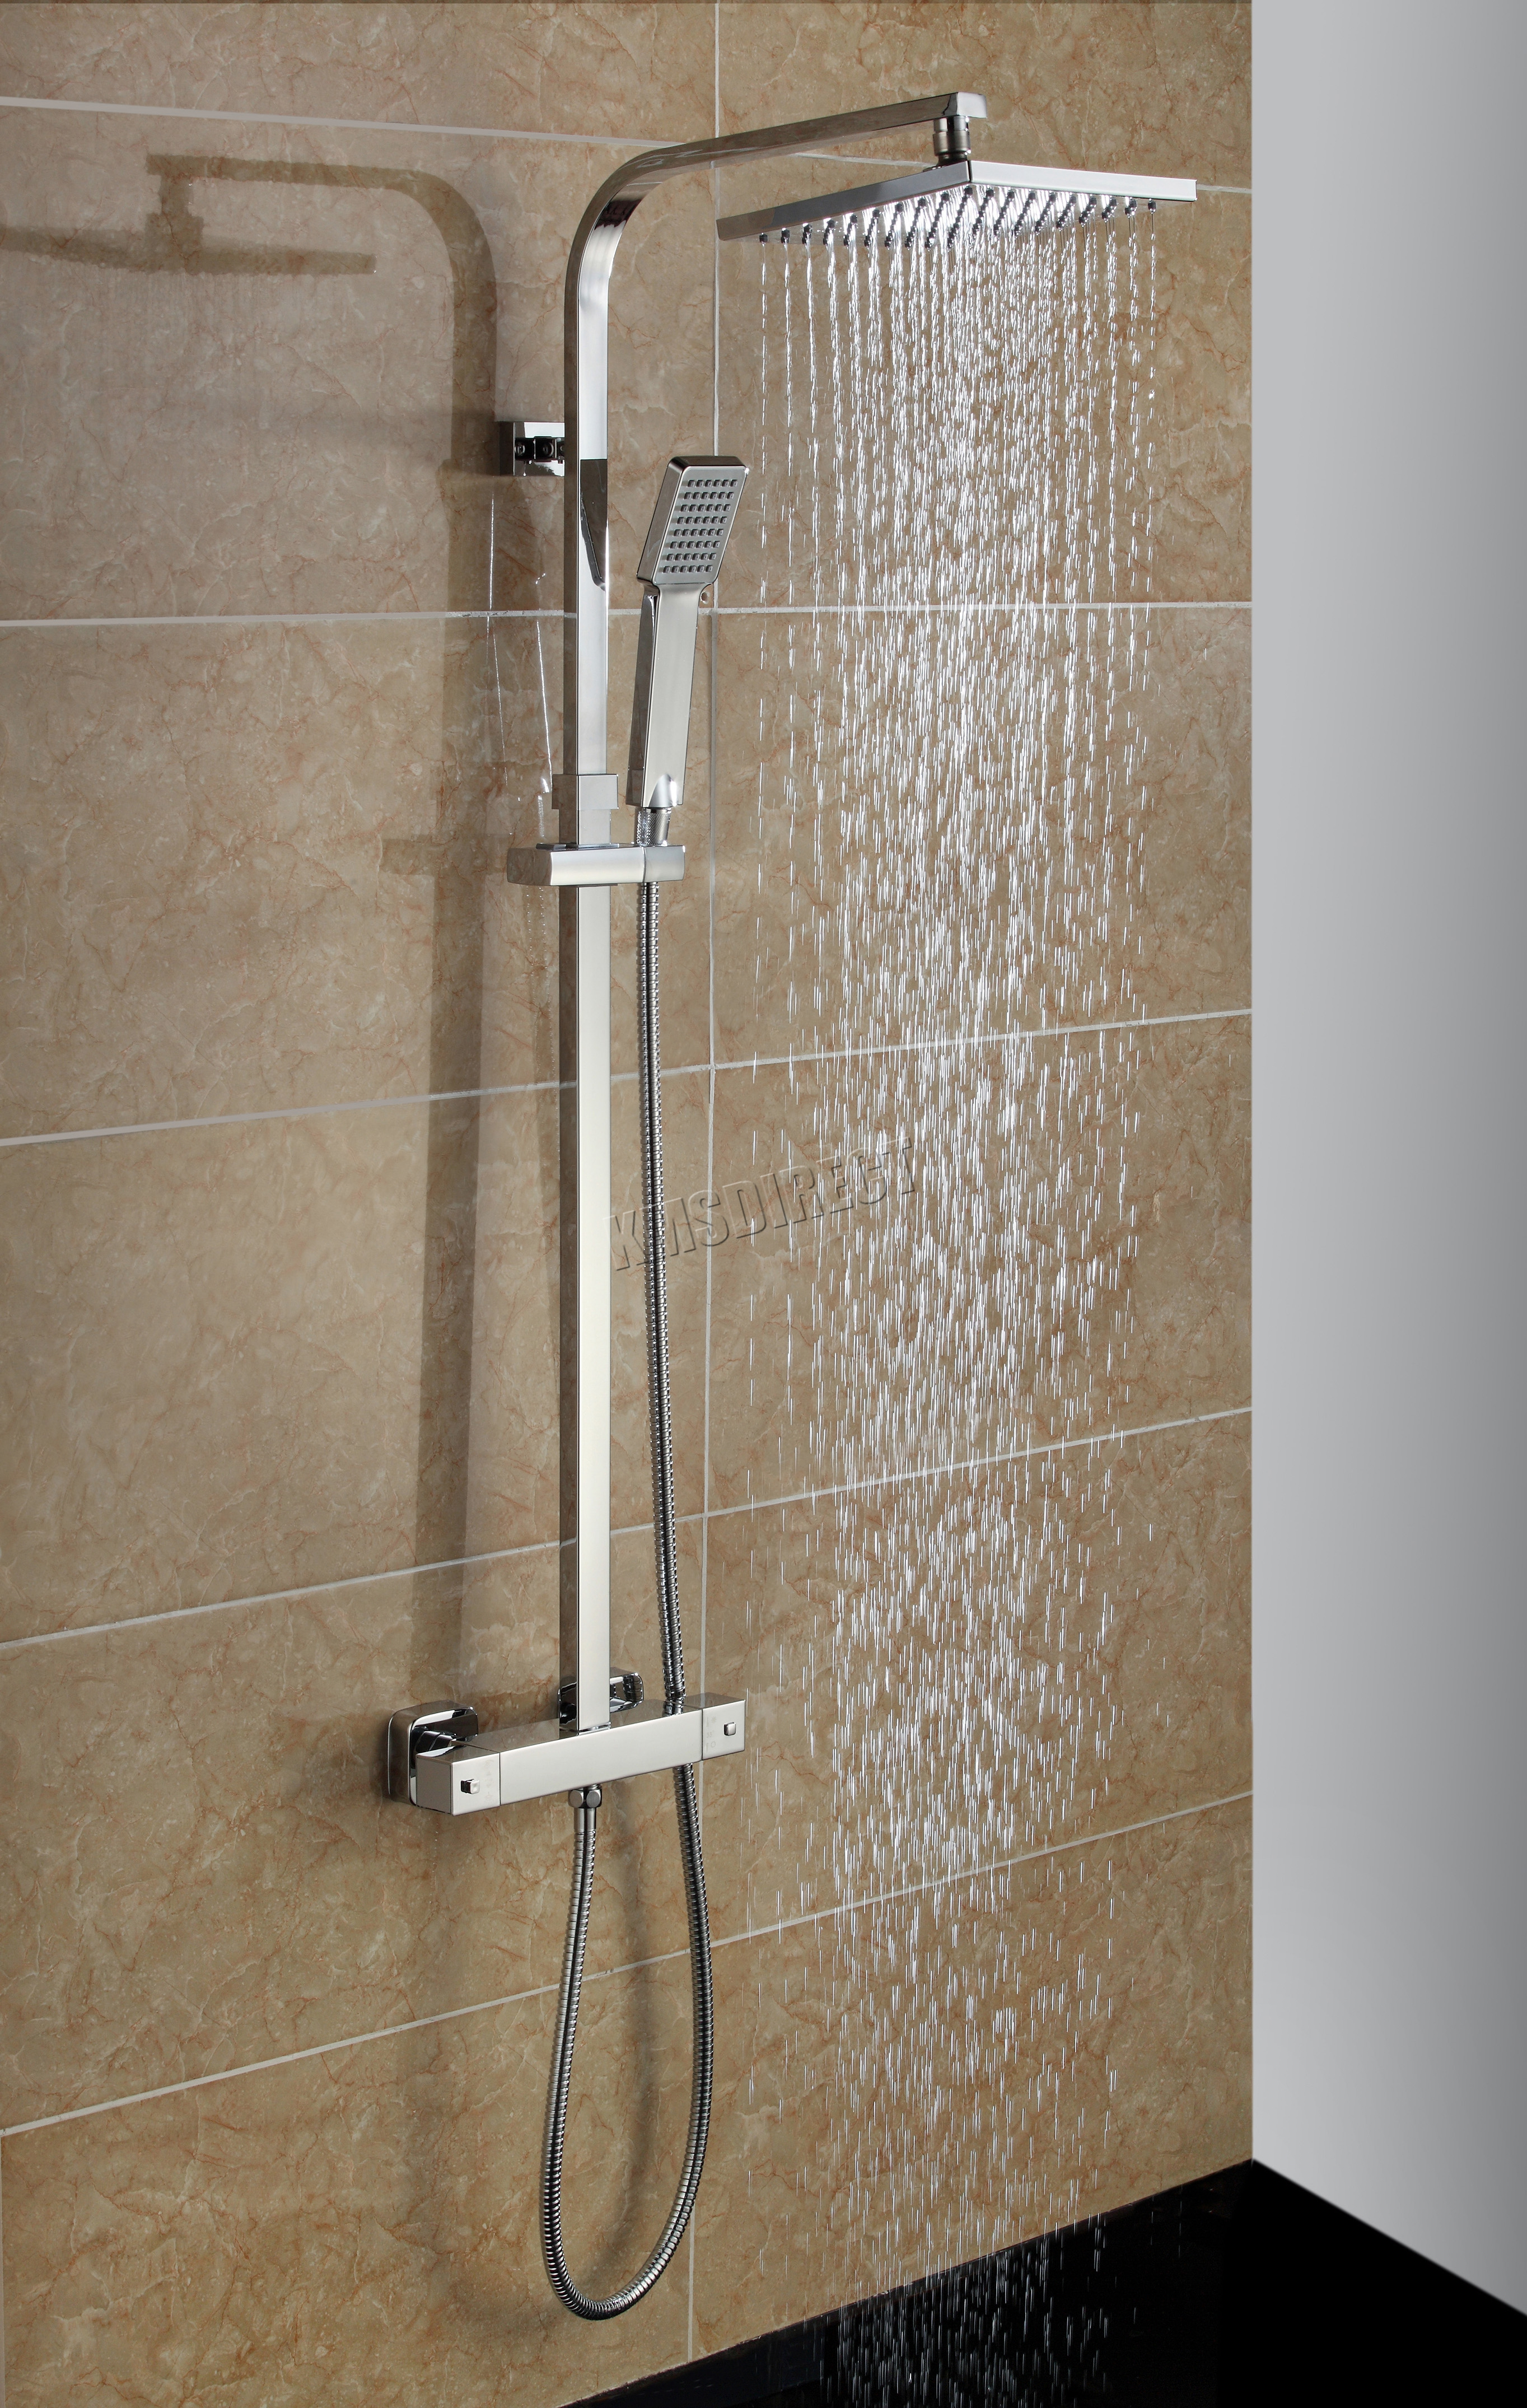 Foxhunter Bathroom Mixer Shower Set Twin Head Square